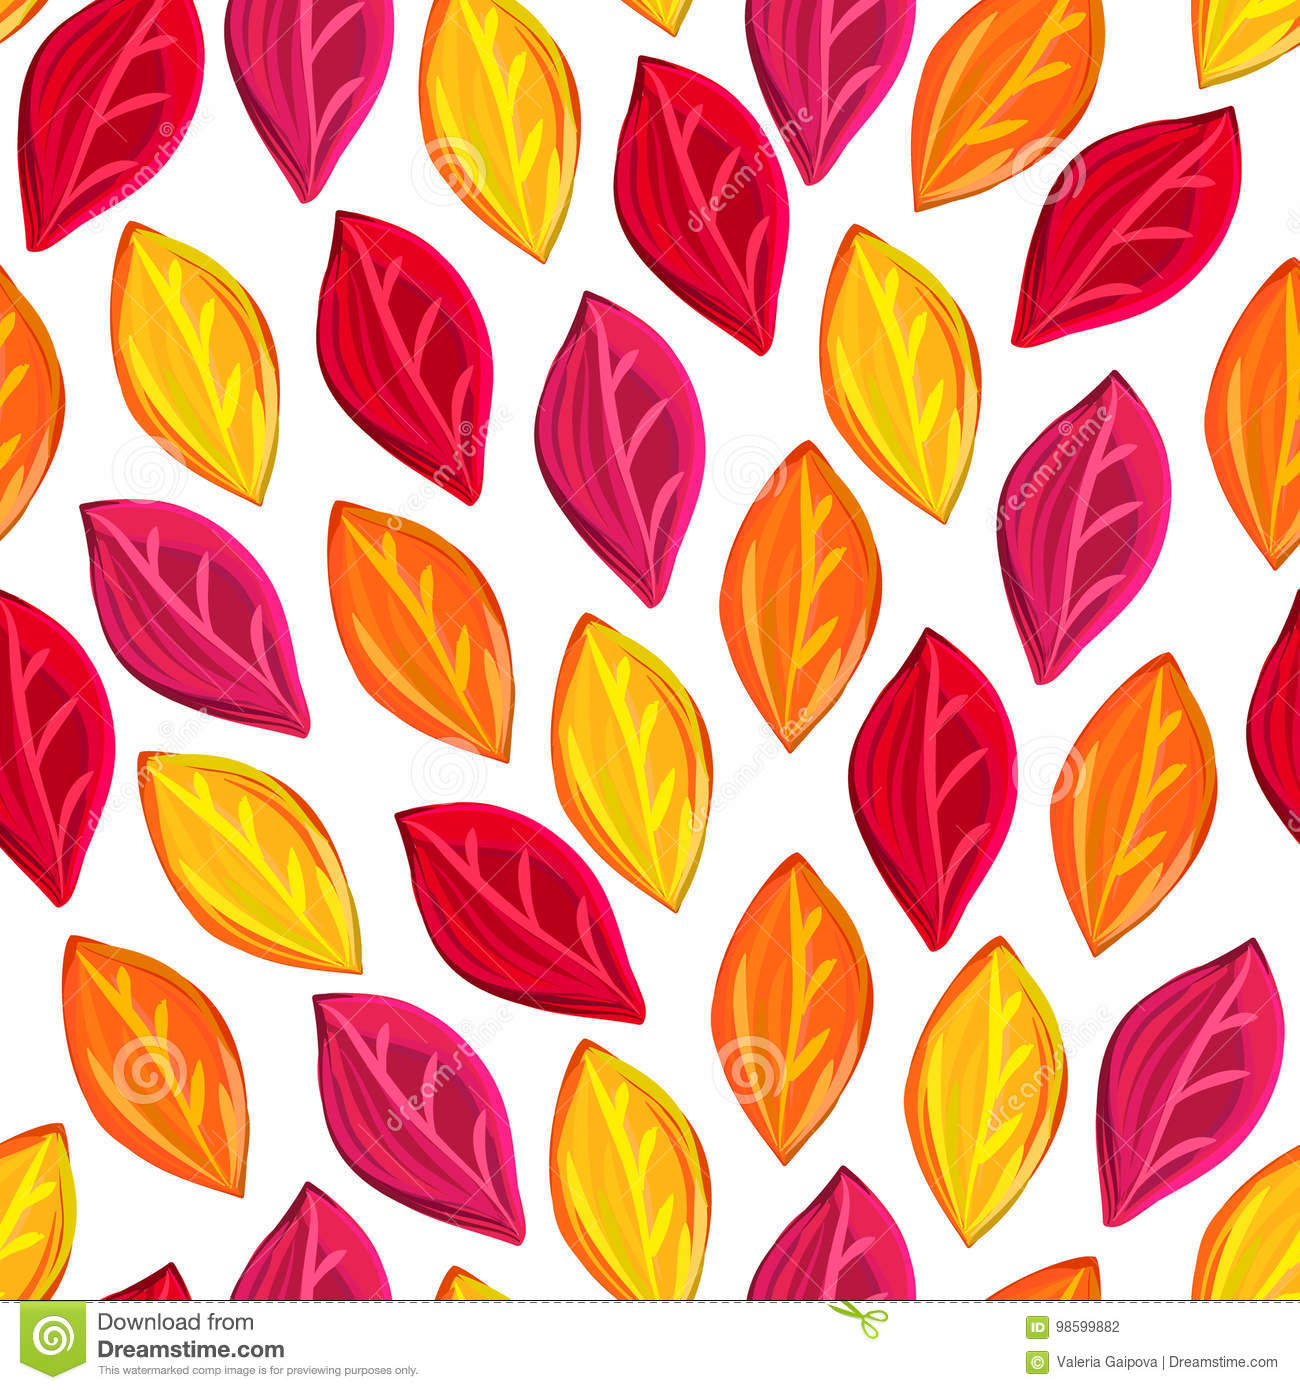 Floral seamless pattern with fallen leaves. Autumn. Leaf fall. Colorful artistic background.